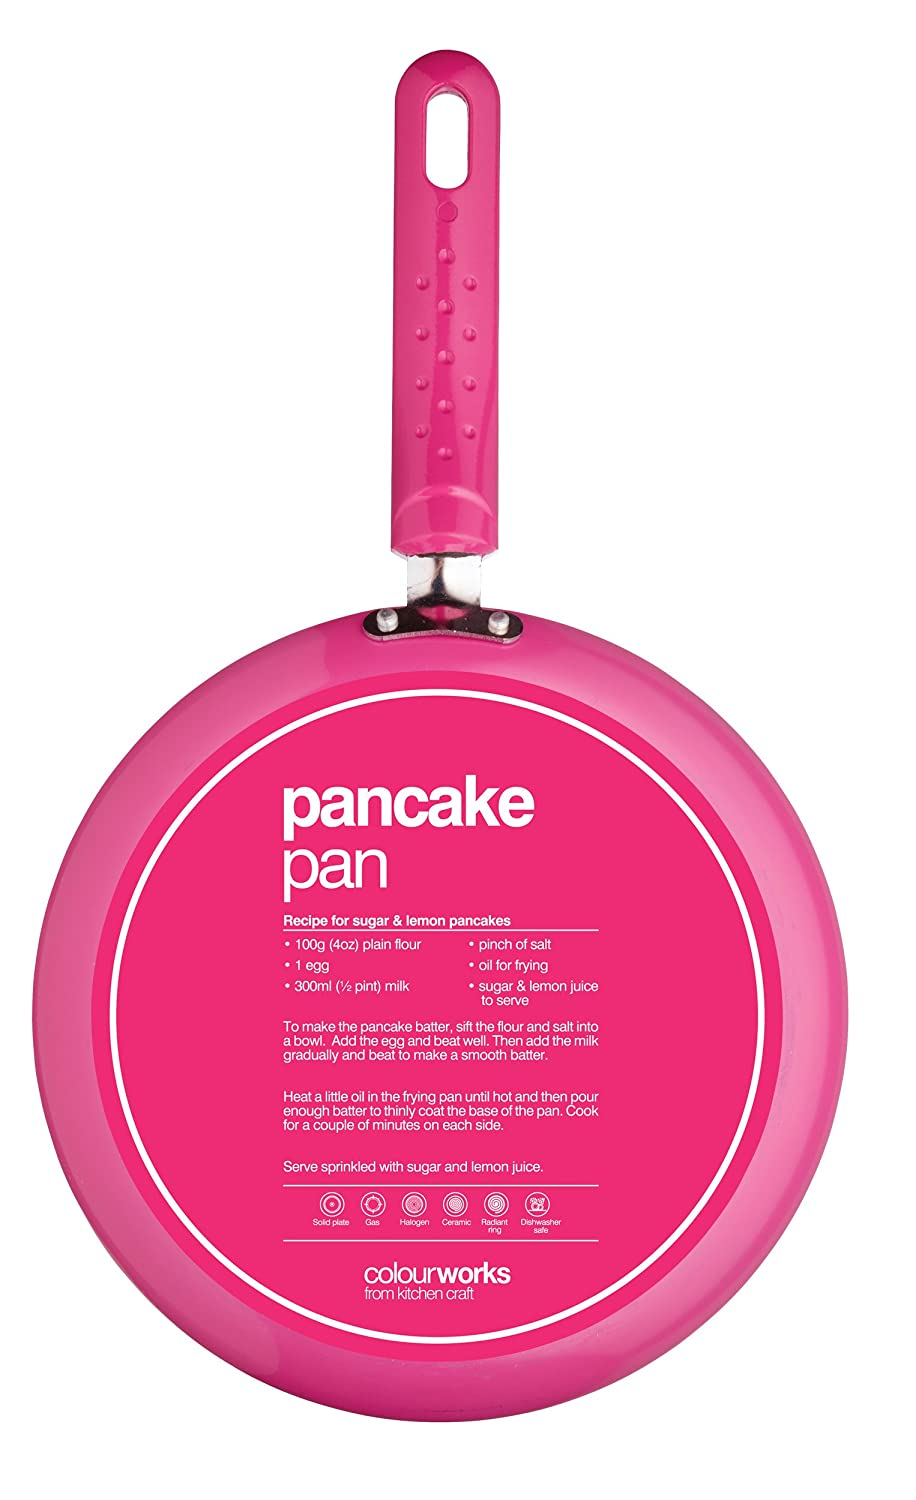 Amazon.com: Kitchencraft Colourworks Non-stick Crepe Pan ...